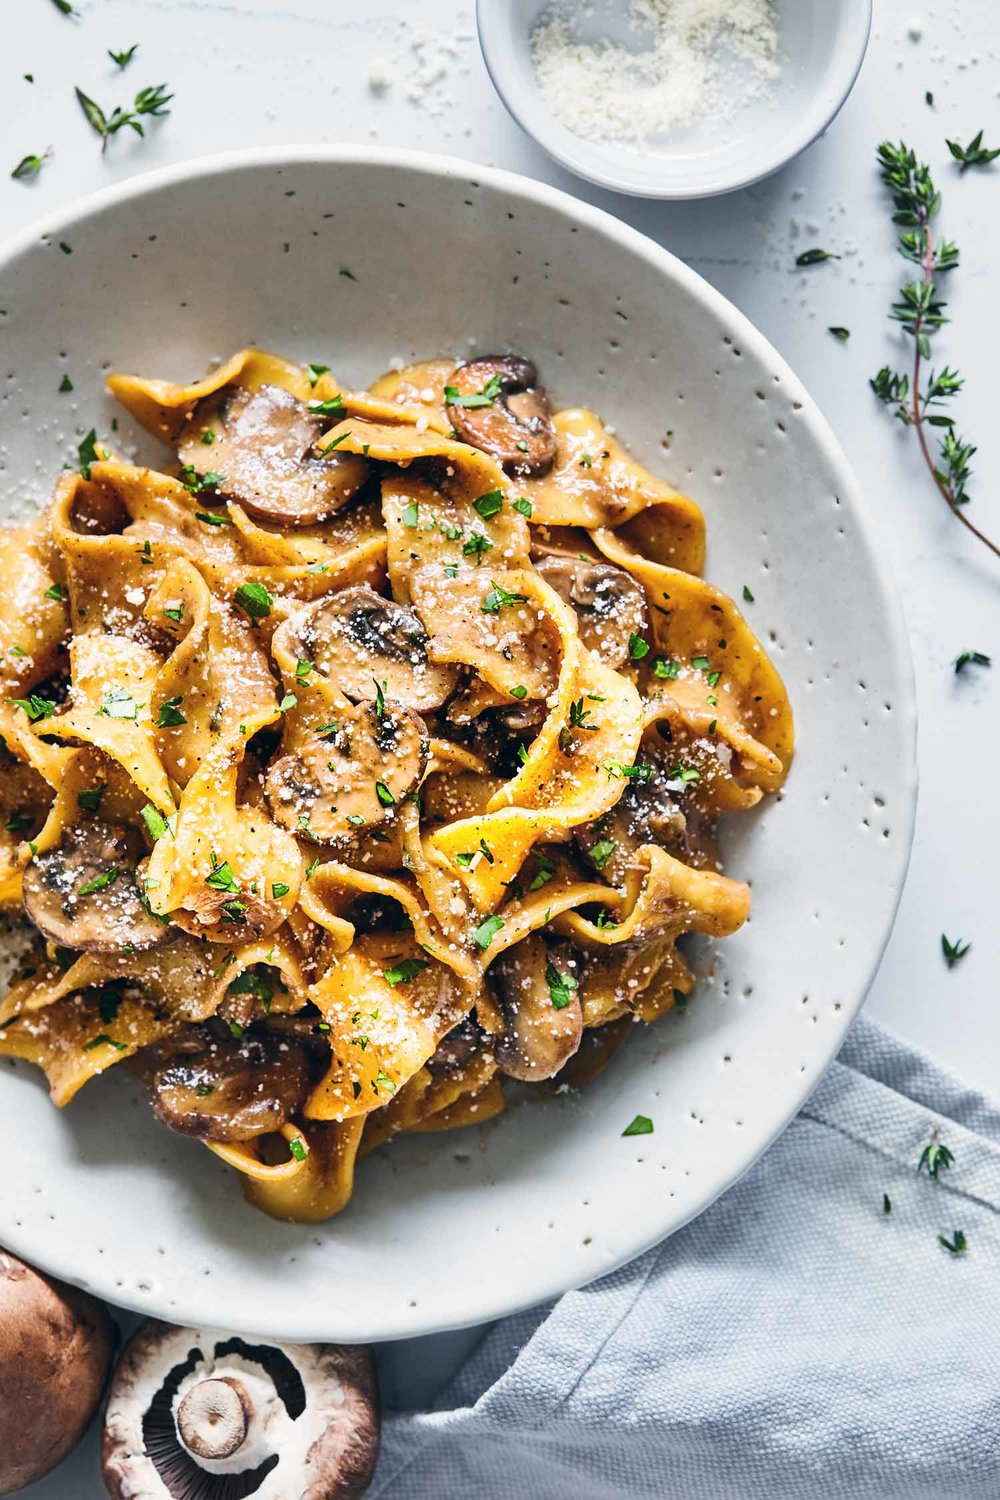 Evergreen Kitchen - Mushroom Stroganoff.jpg